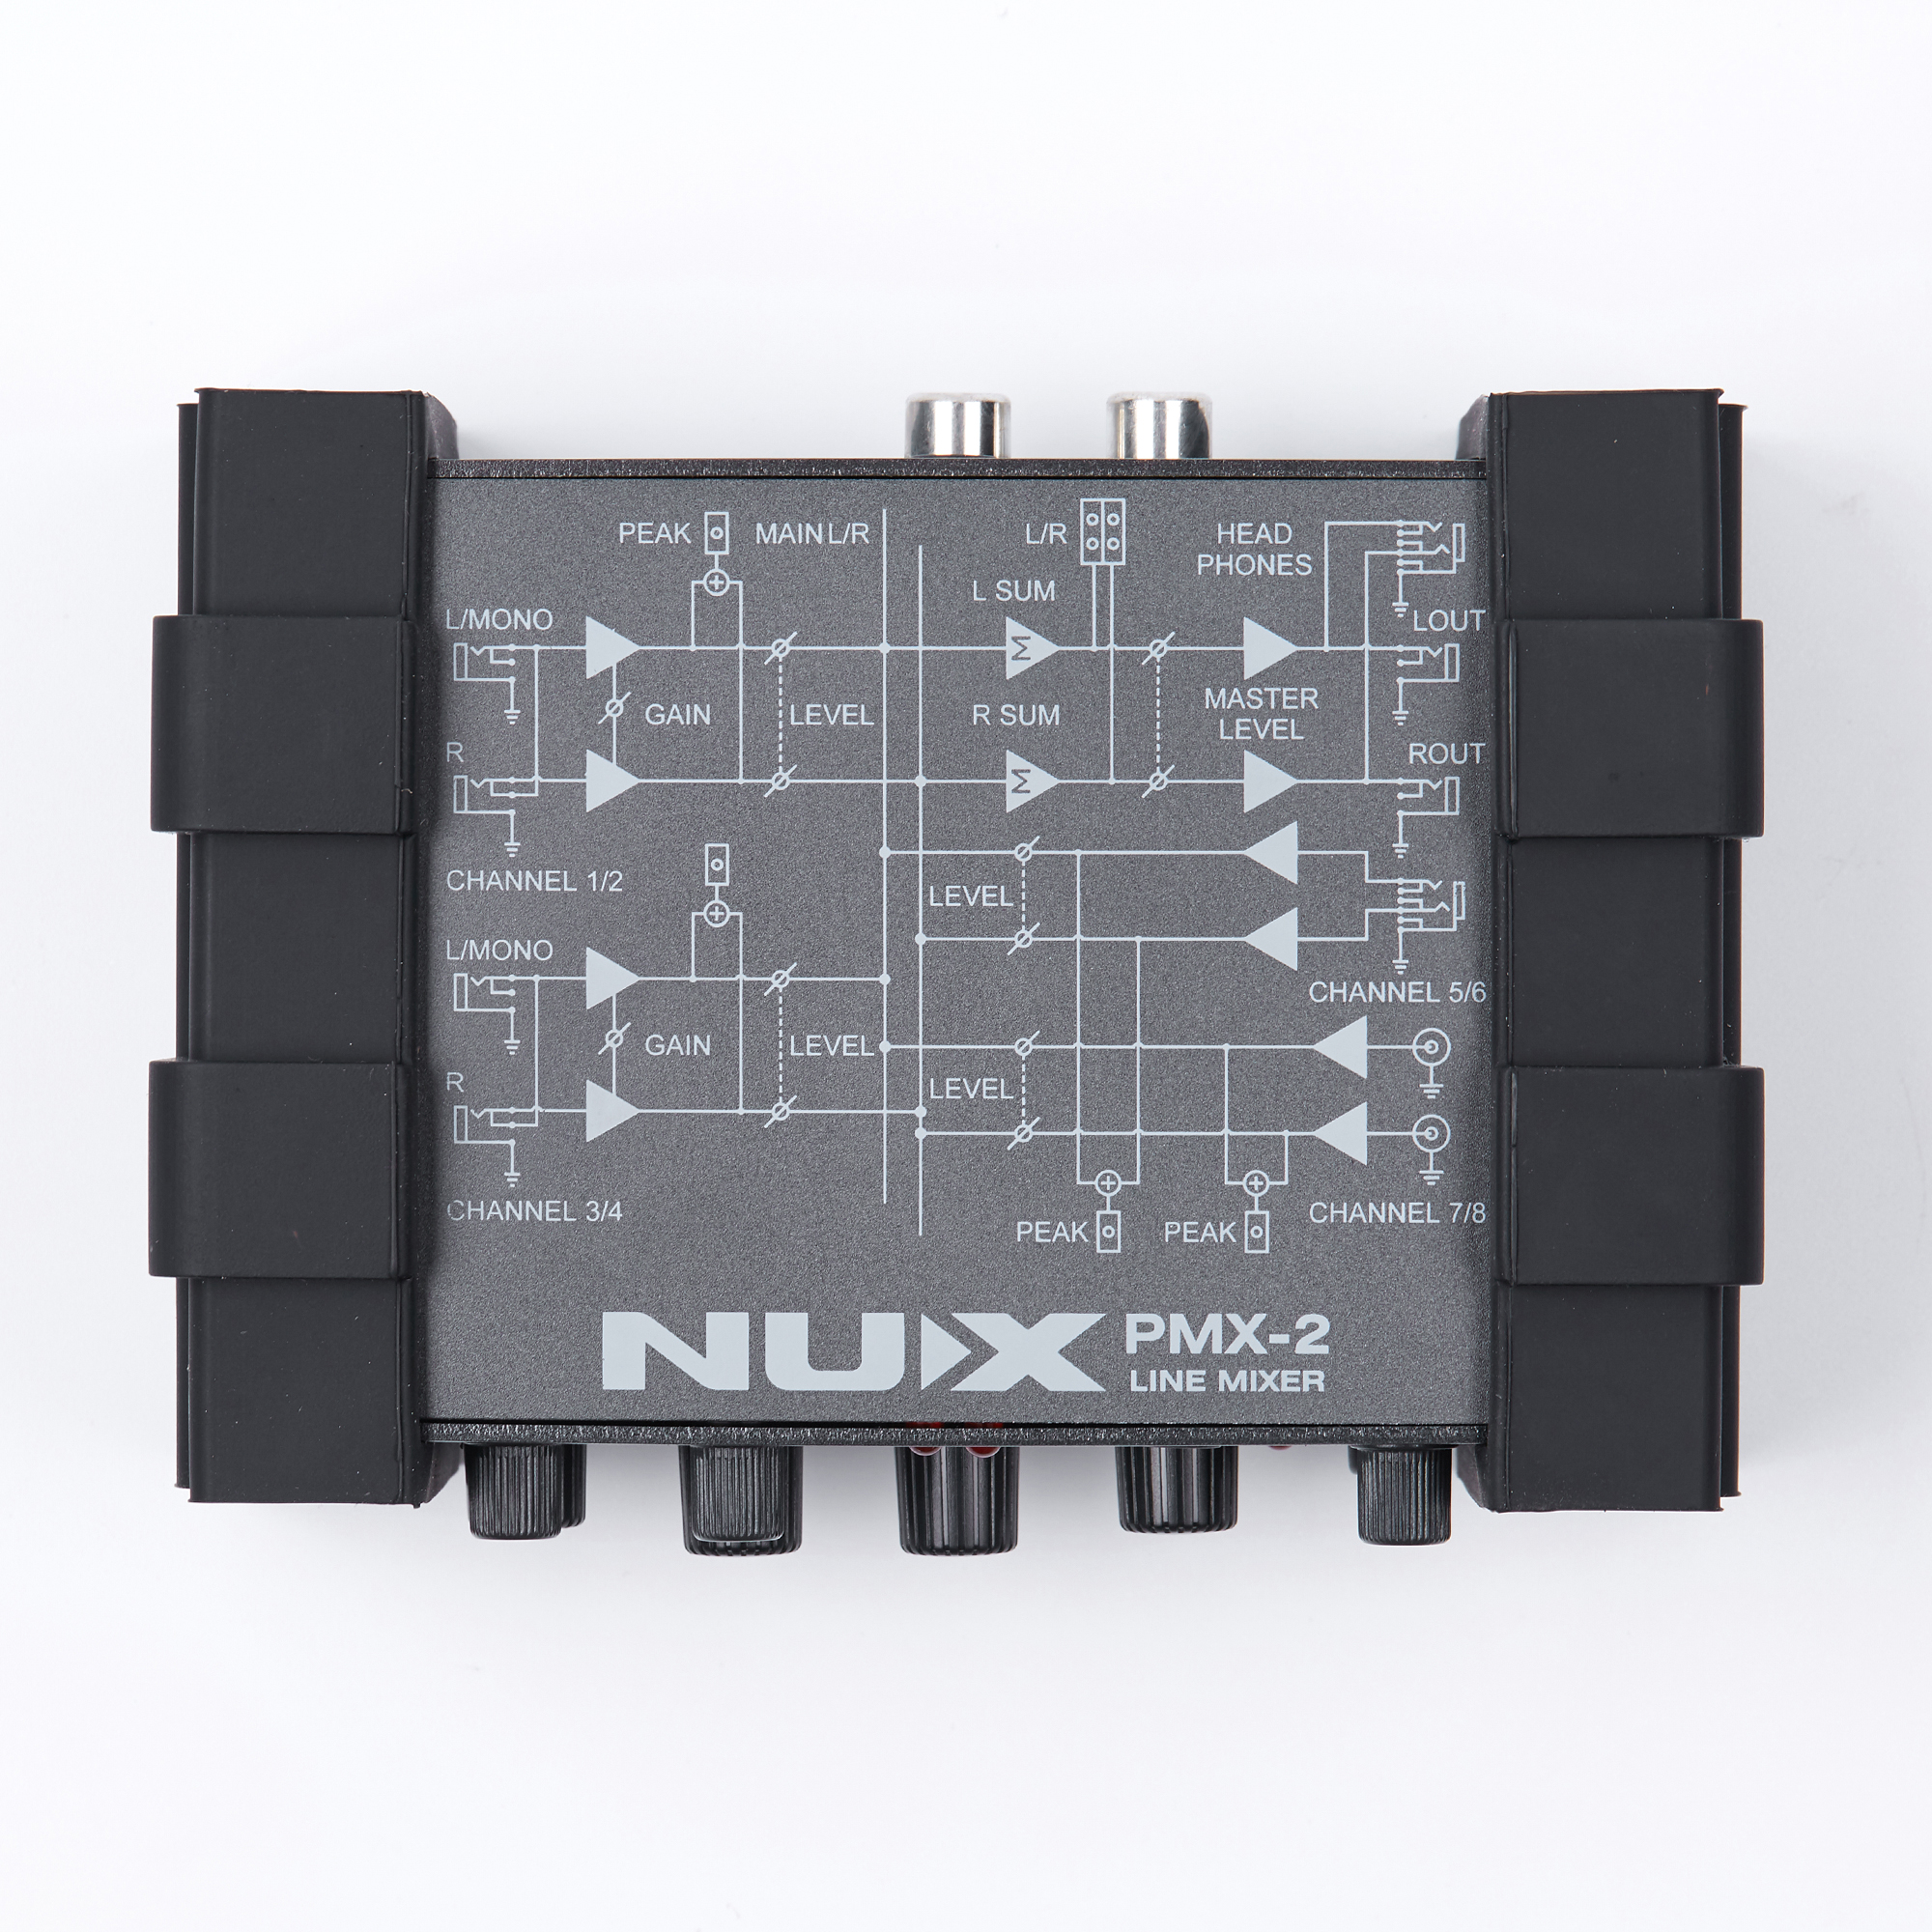 Gain Control 8 Inputs and 2 Outputs NUX PMX-2 Multi-Channel Mini Mixer 30 Musical Instruments Accessories for Guitar Bass Player шорты пляжные globe luster boardshort black